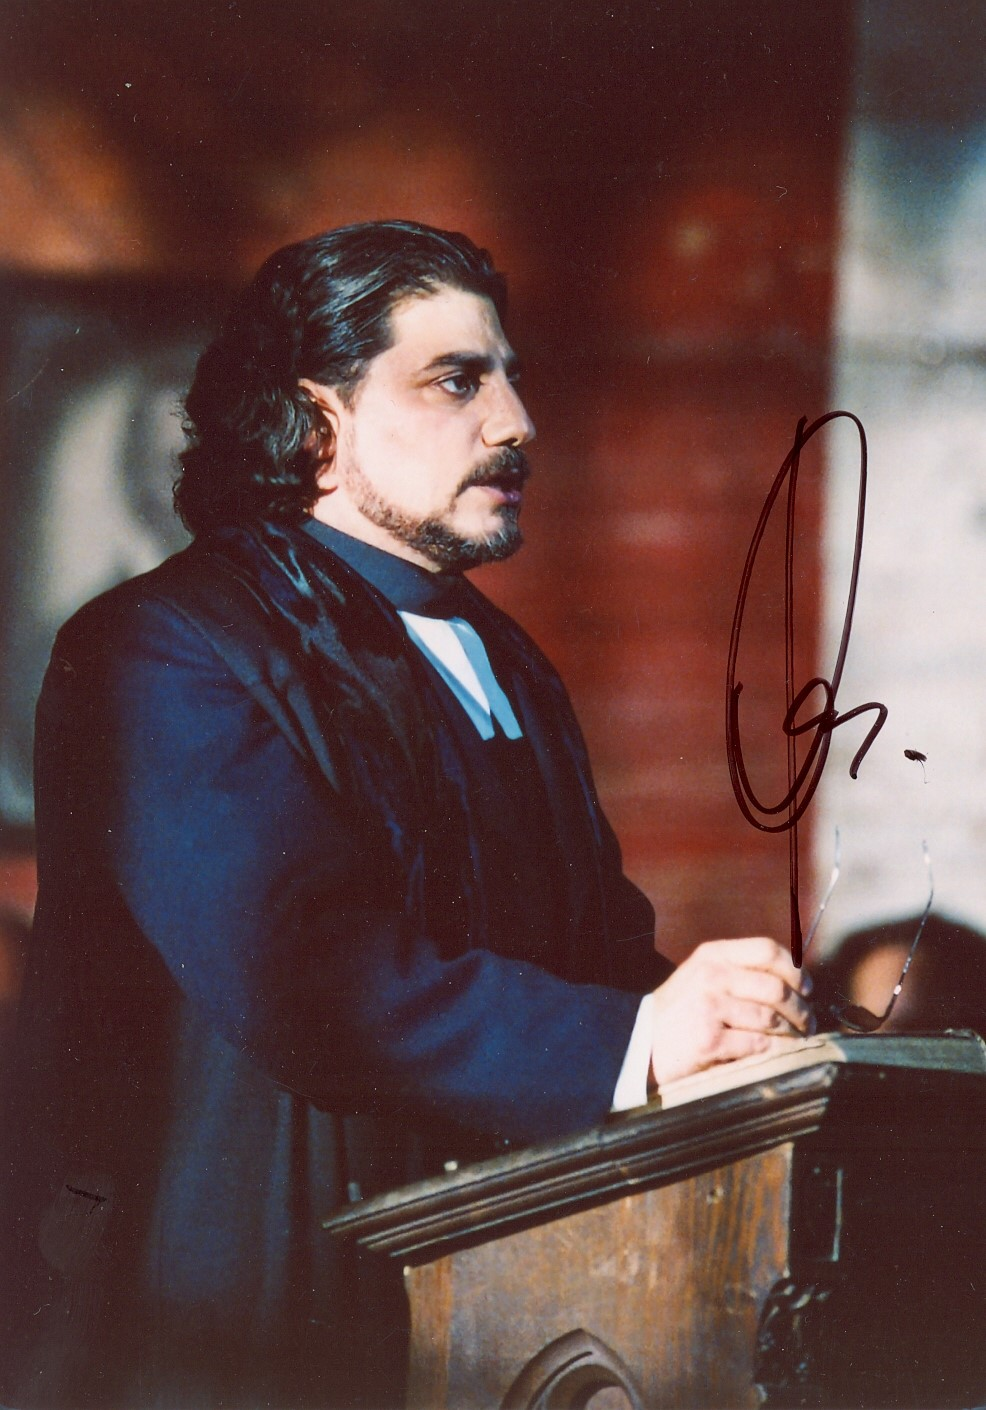 Lot 199 - OPERA : A good selection of signed 5 x 7